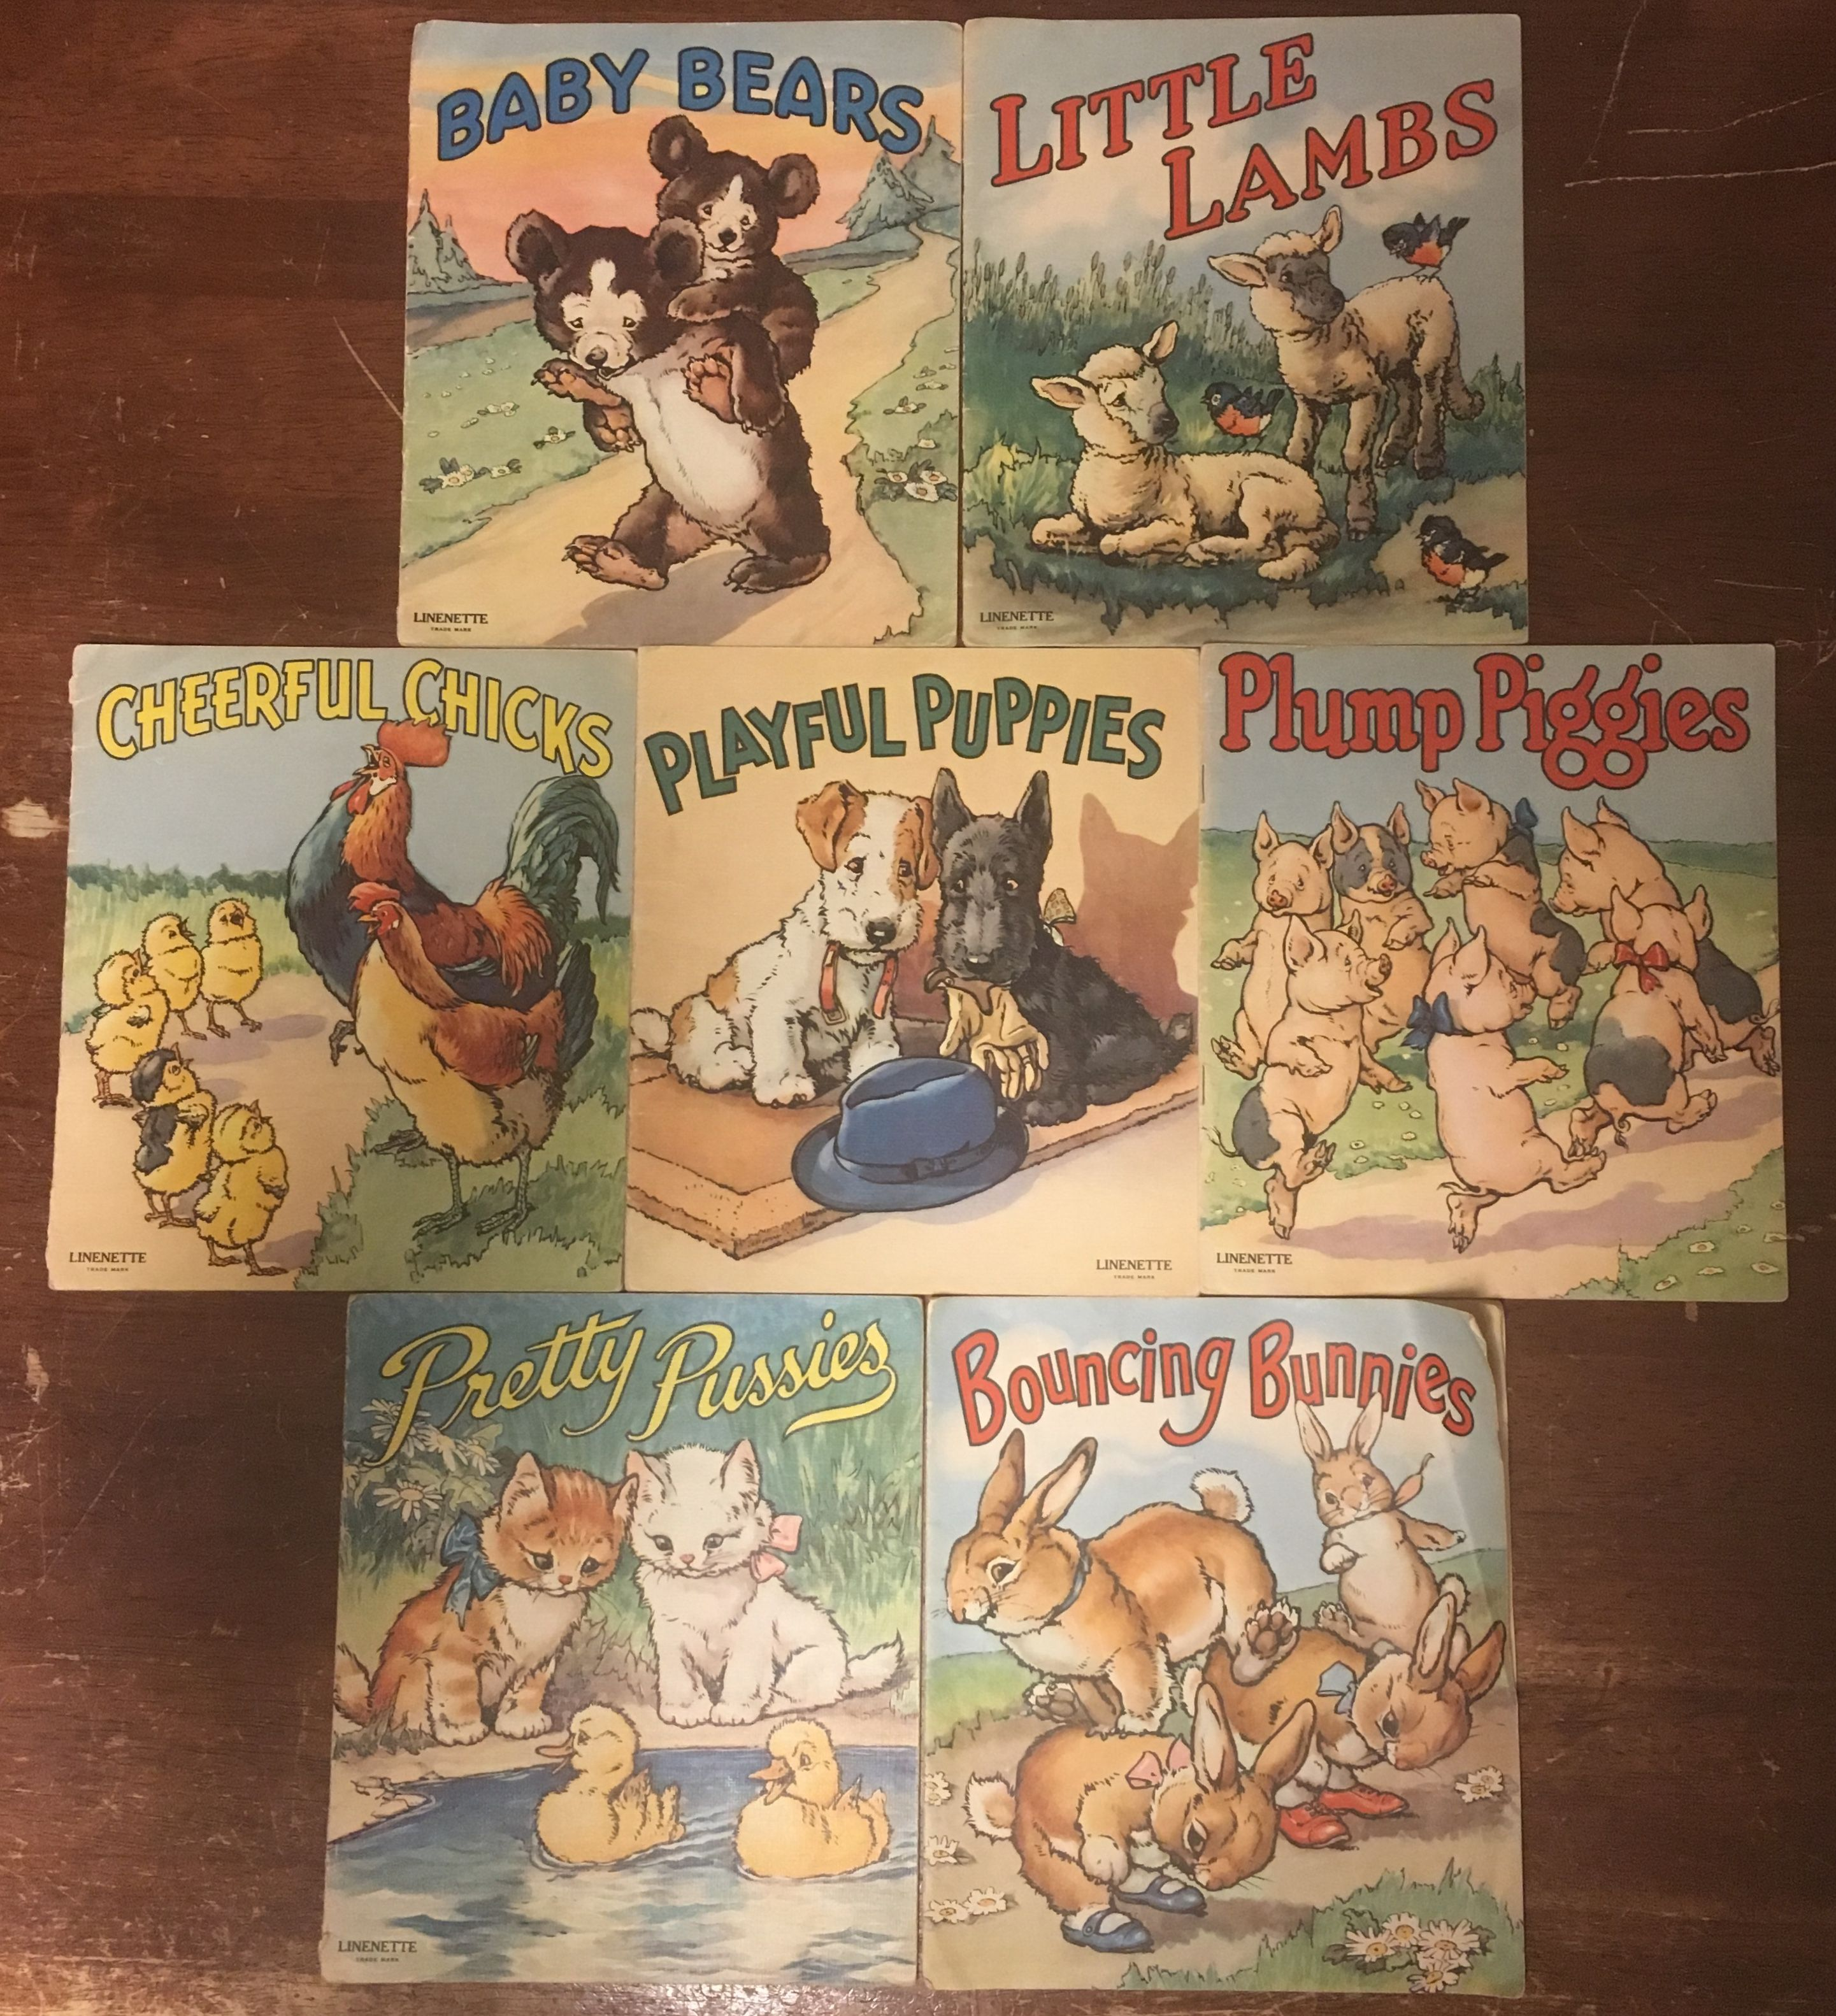 Baby Bears; Little Lambs; Cheerful Chicks; Playful Puppies; Plumb Piggies; Pretty Pussies; Bouncing Bunnies, No Author